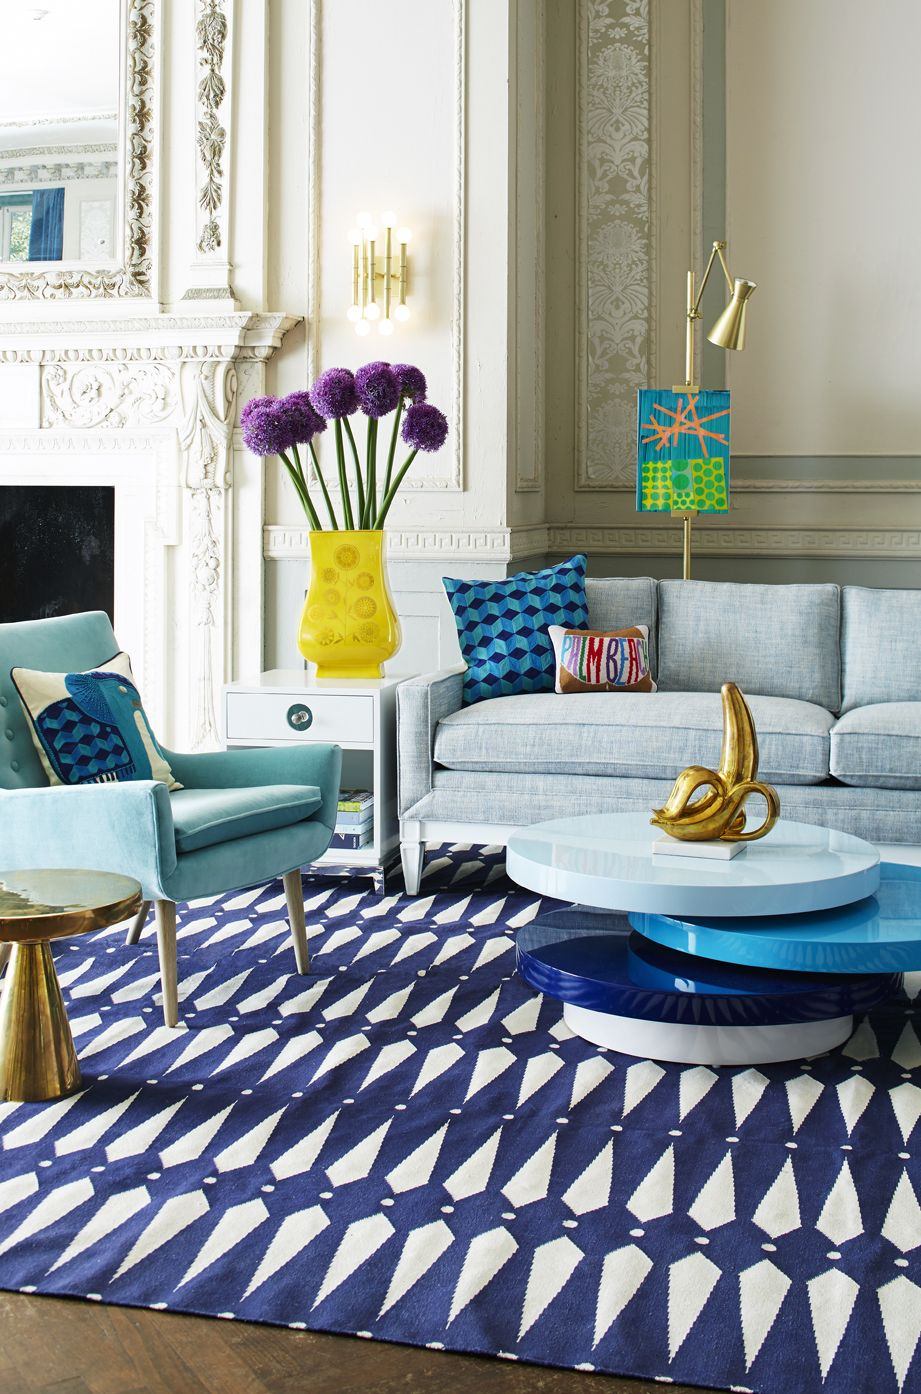 Find this Pin and more on Living Room Design Ideas by bocadolobo. Jonathan Adler Catalog  Best Interior Design  Top Interior